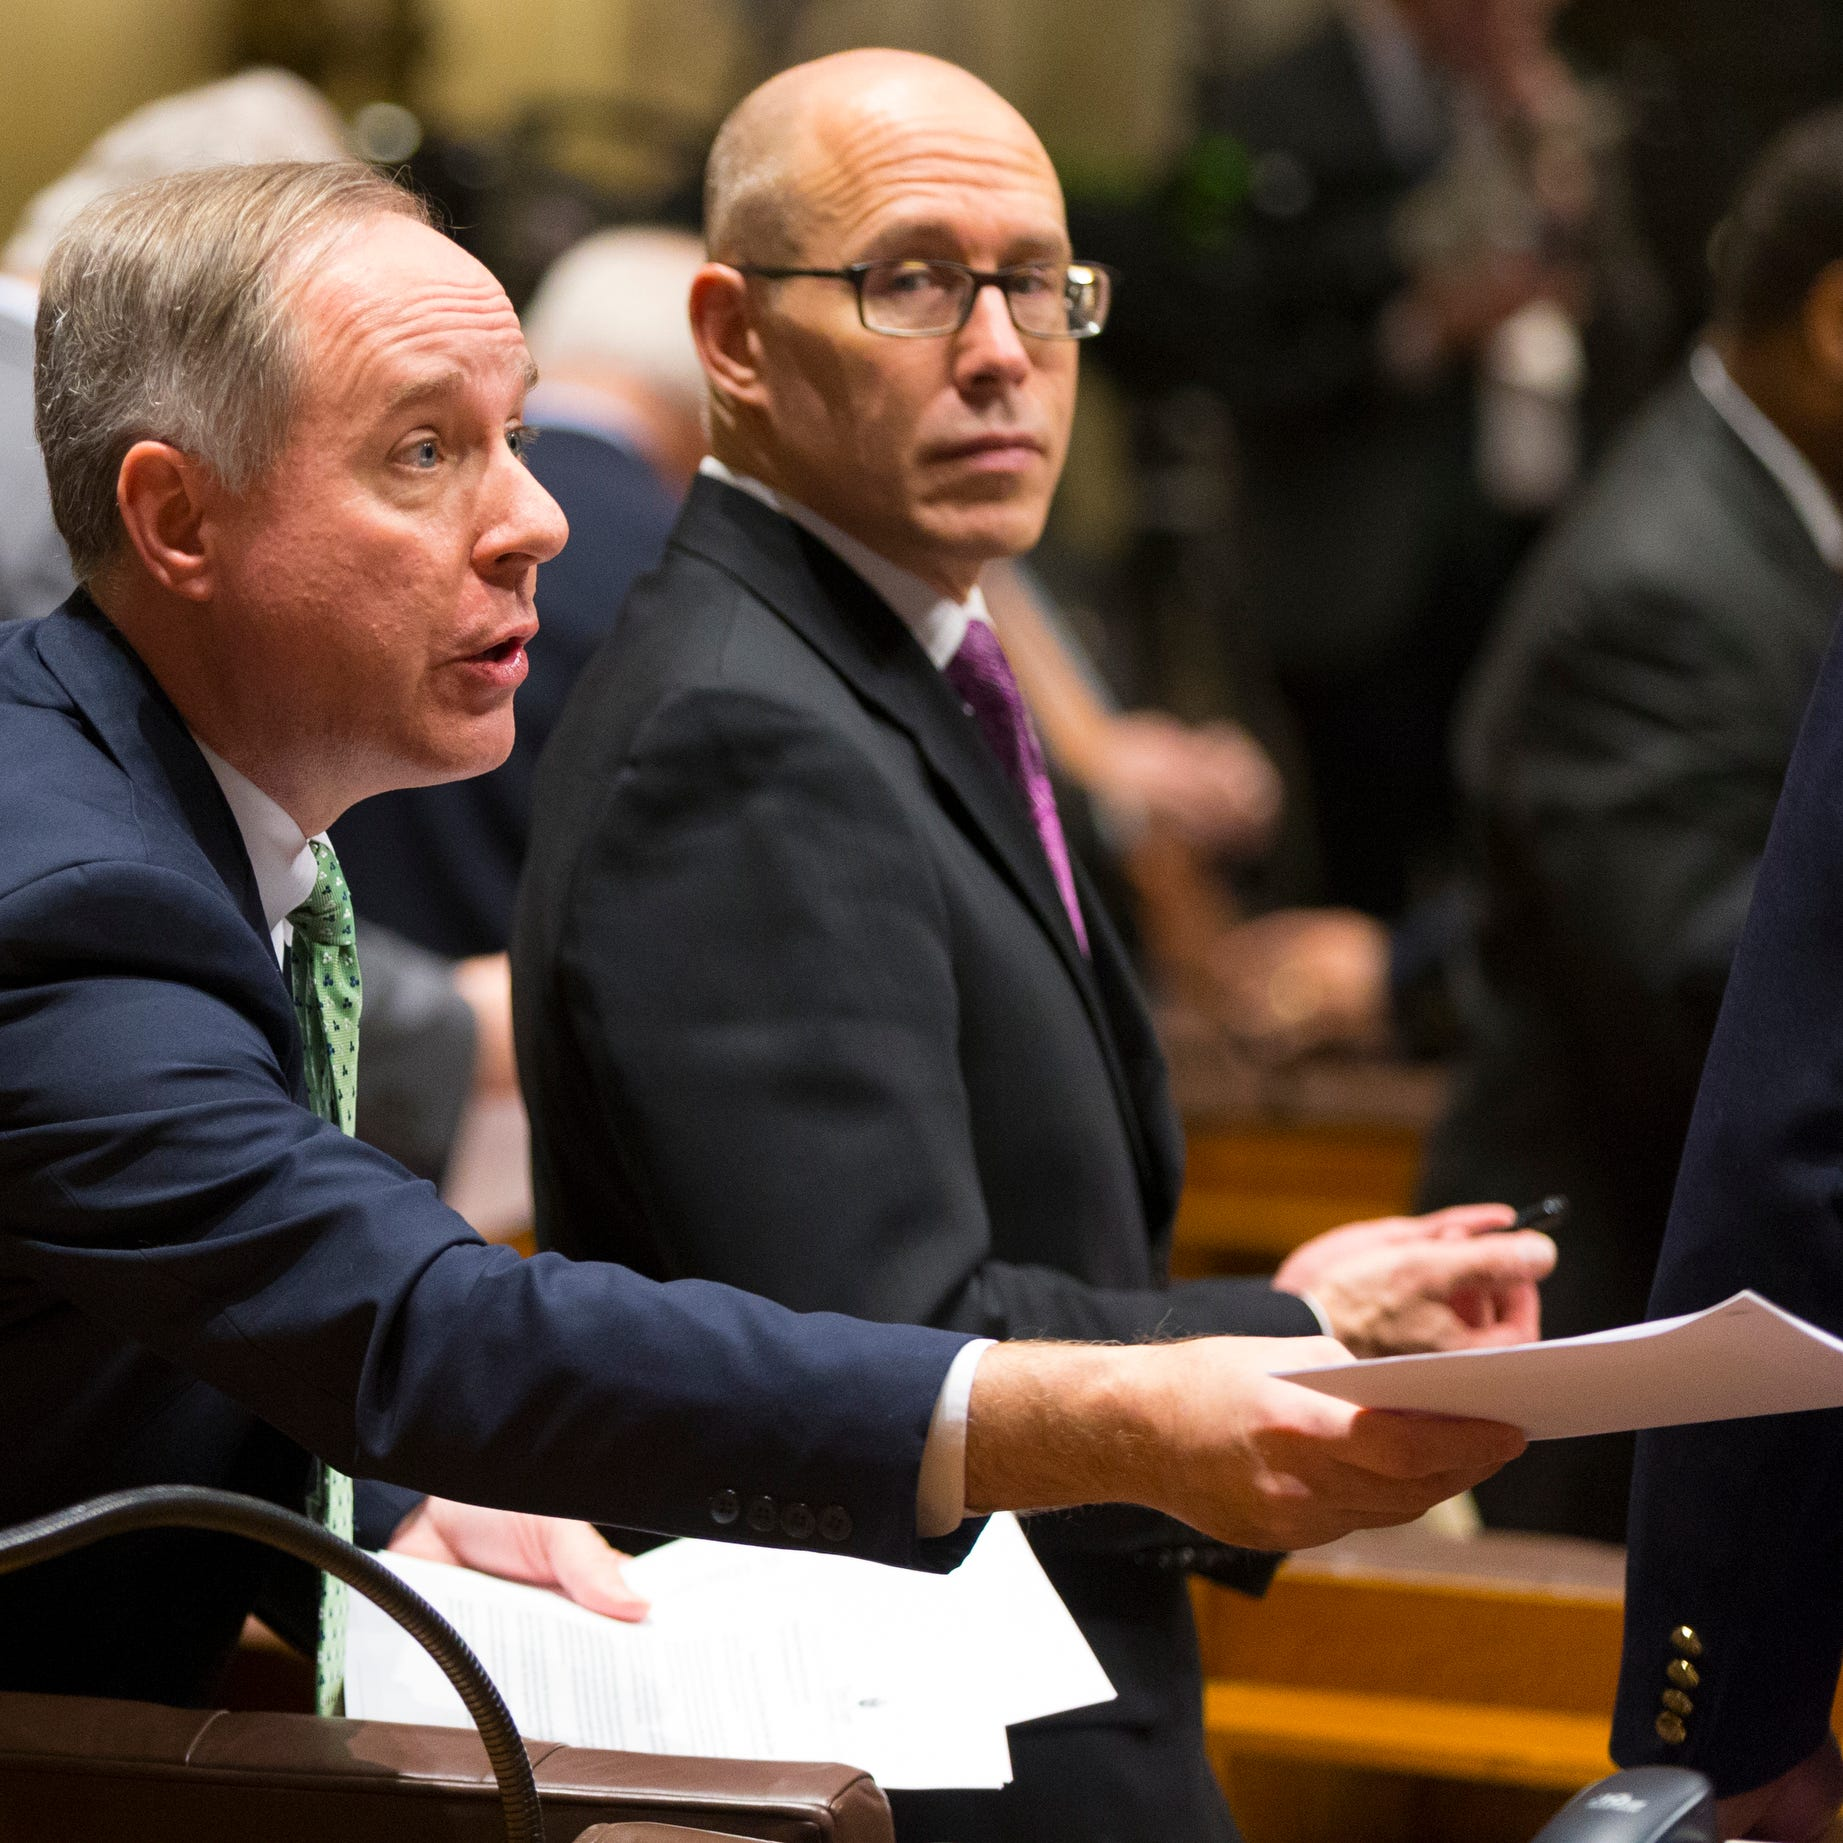 In Wisconsin gerrymandering case, Assembly Speaker Robin Vos refuses to testify